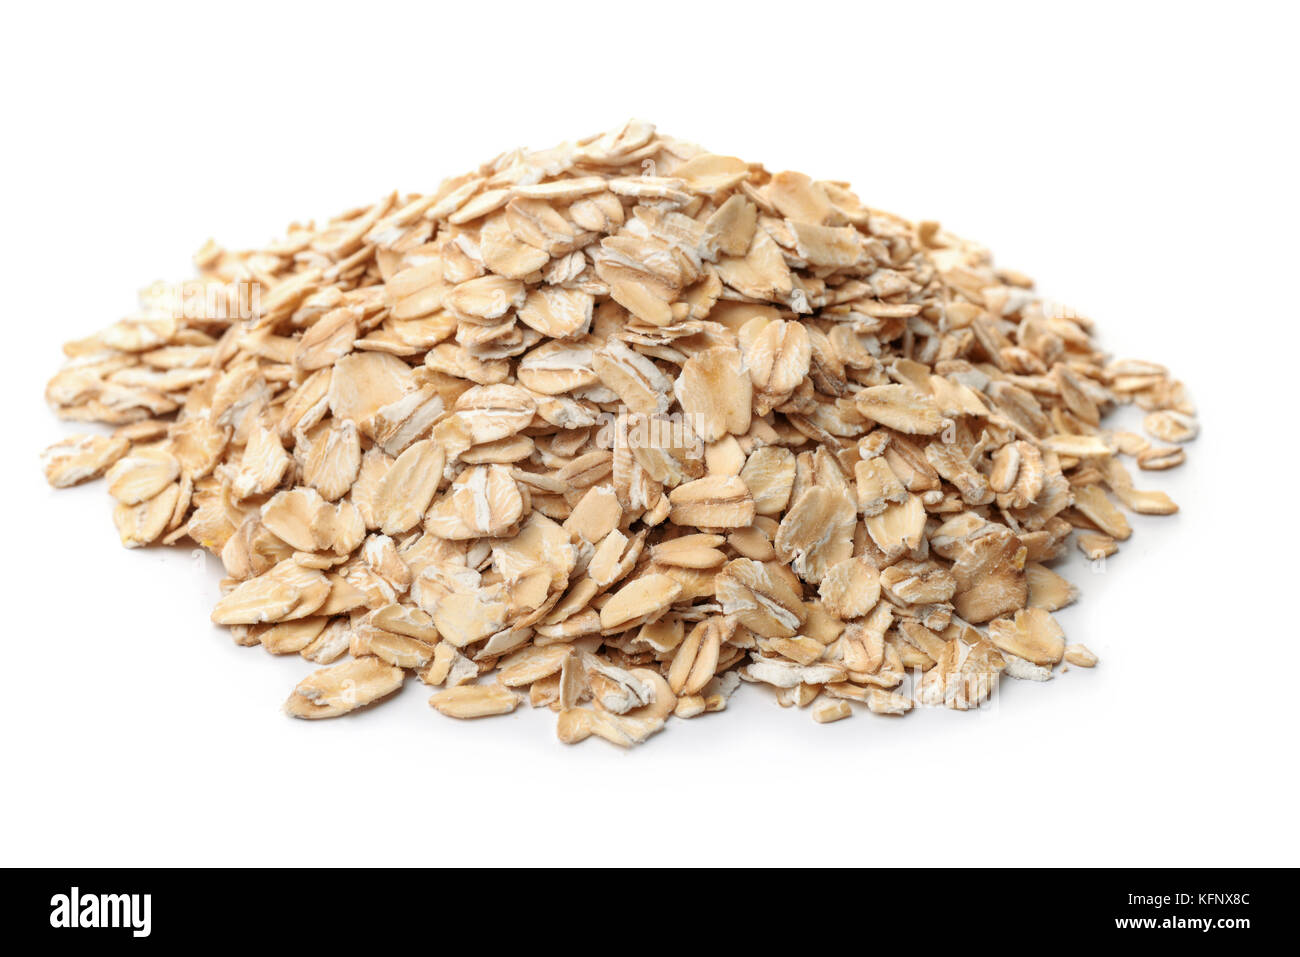 Pile of dry rolled oatmeal isolated on white - Stock Image